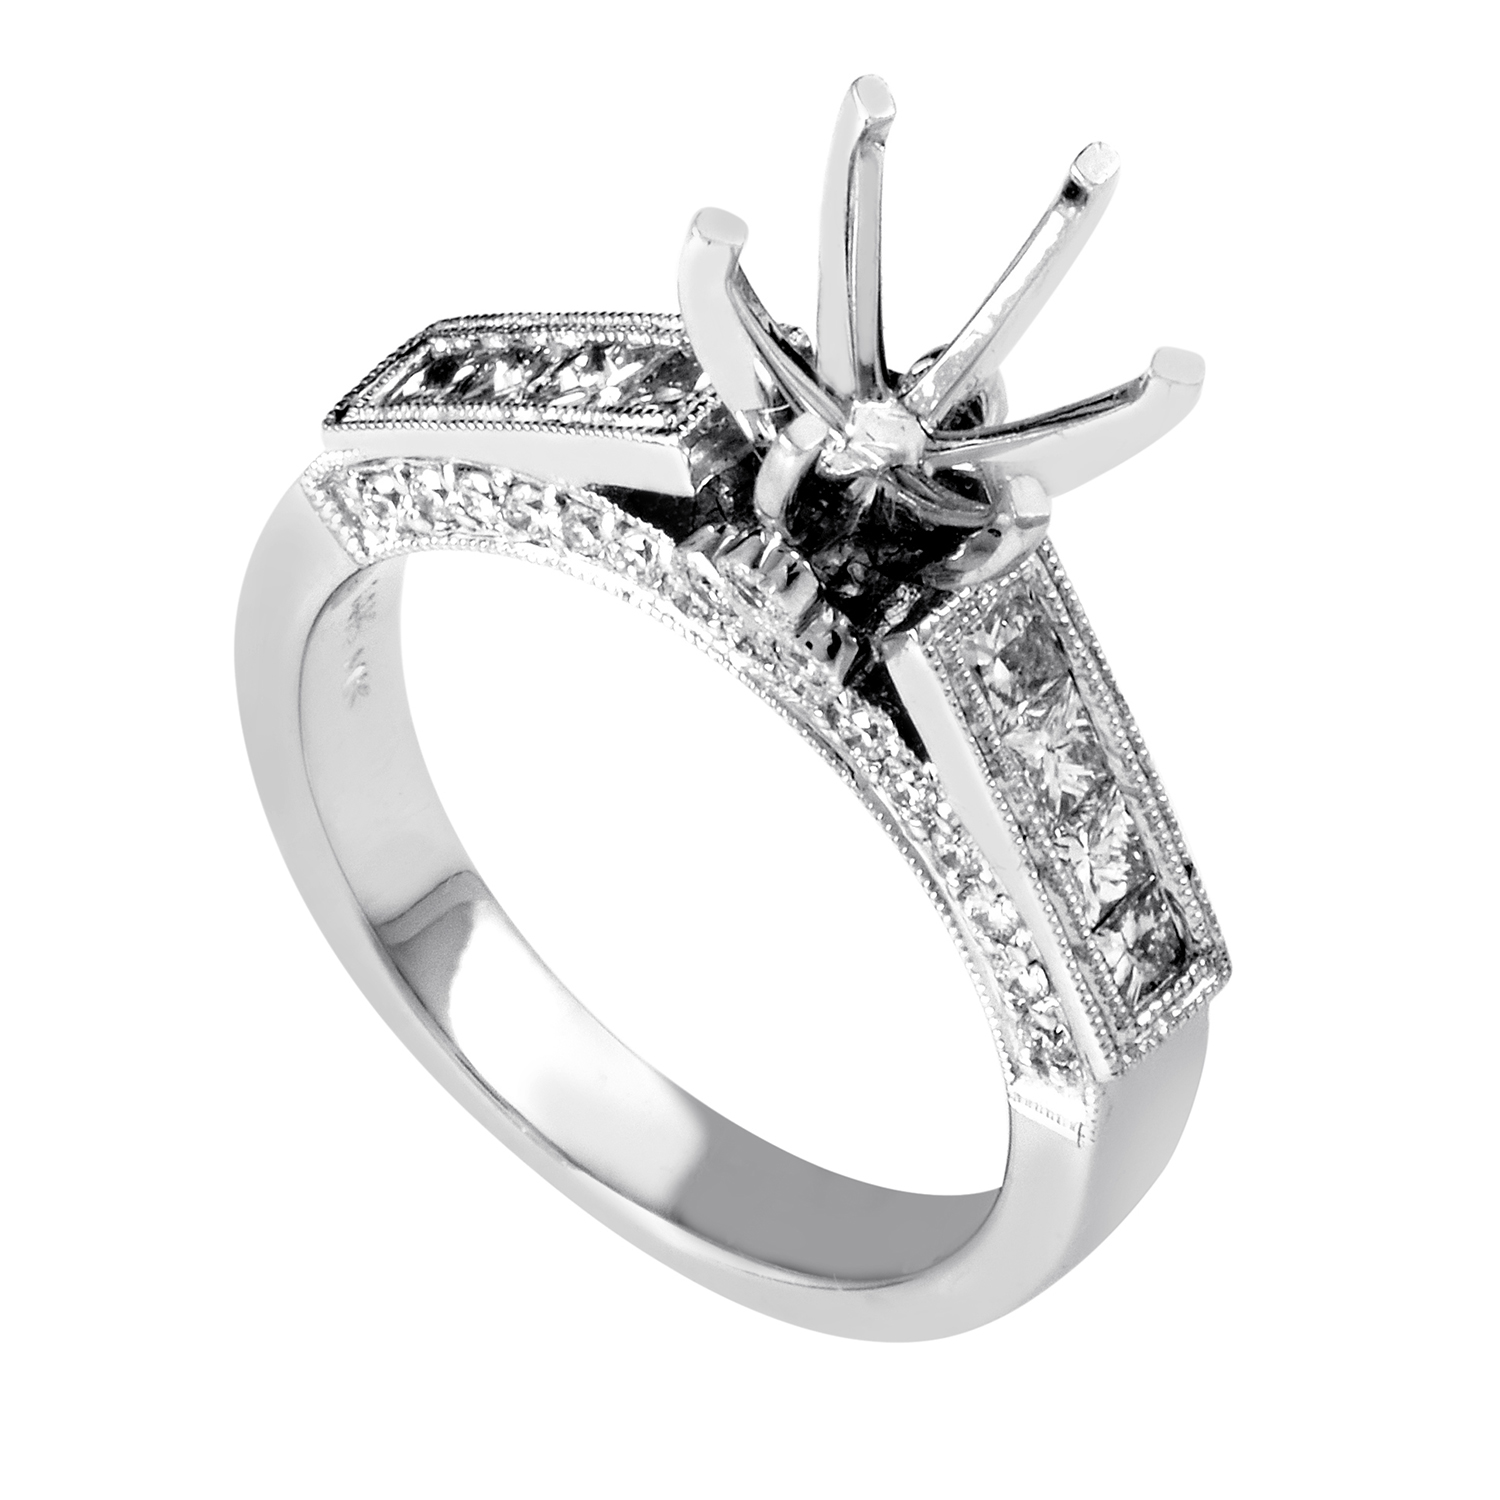 Women's 14K White Gold Diamond Engagement Ring Mounting SM4-092111W